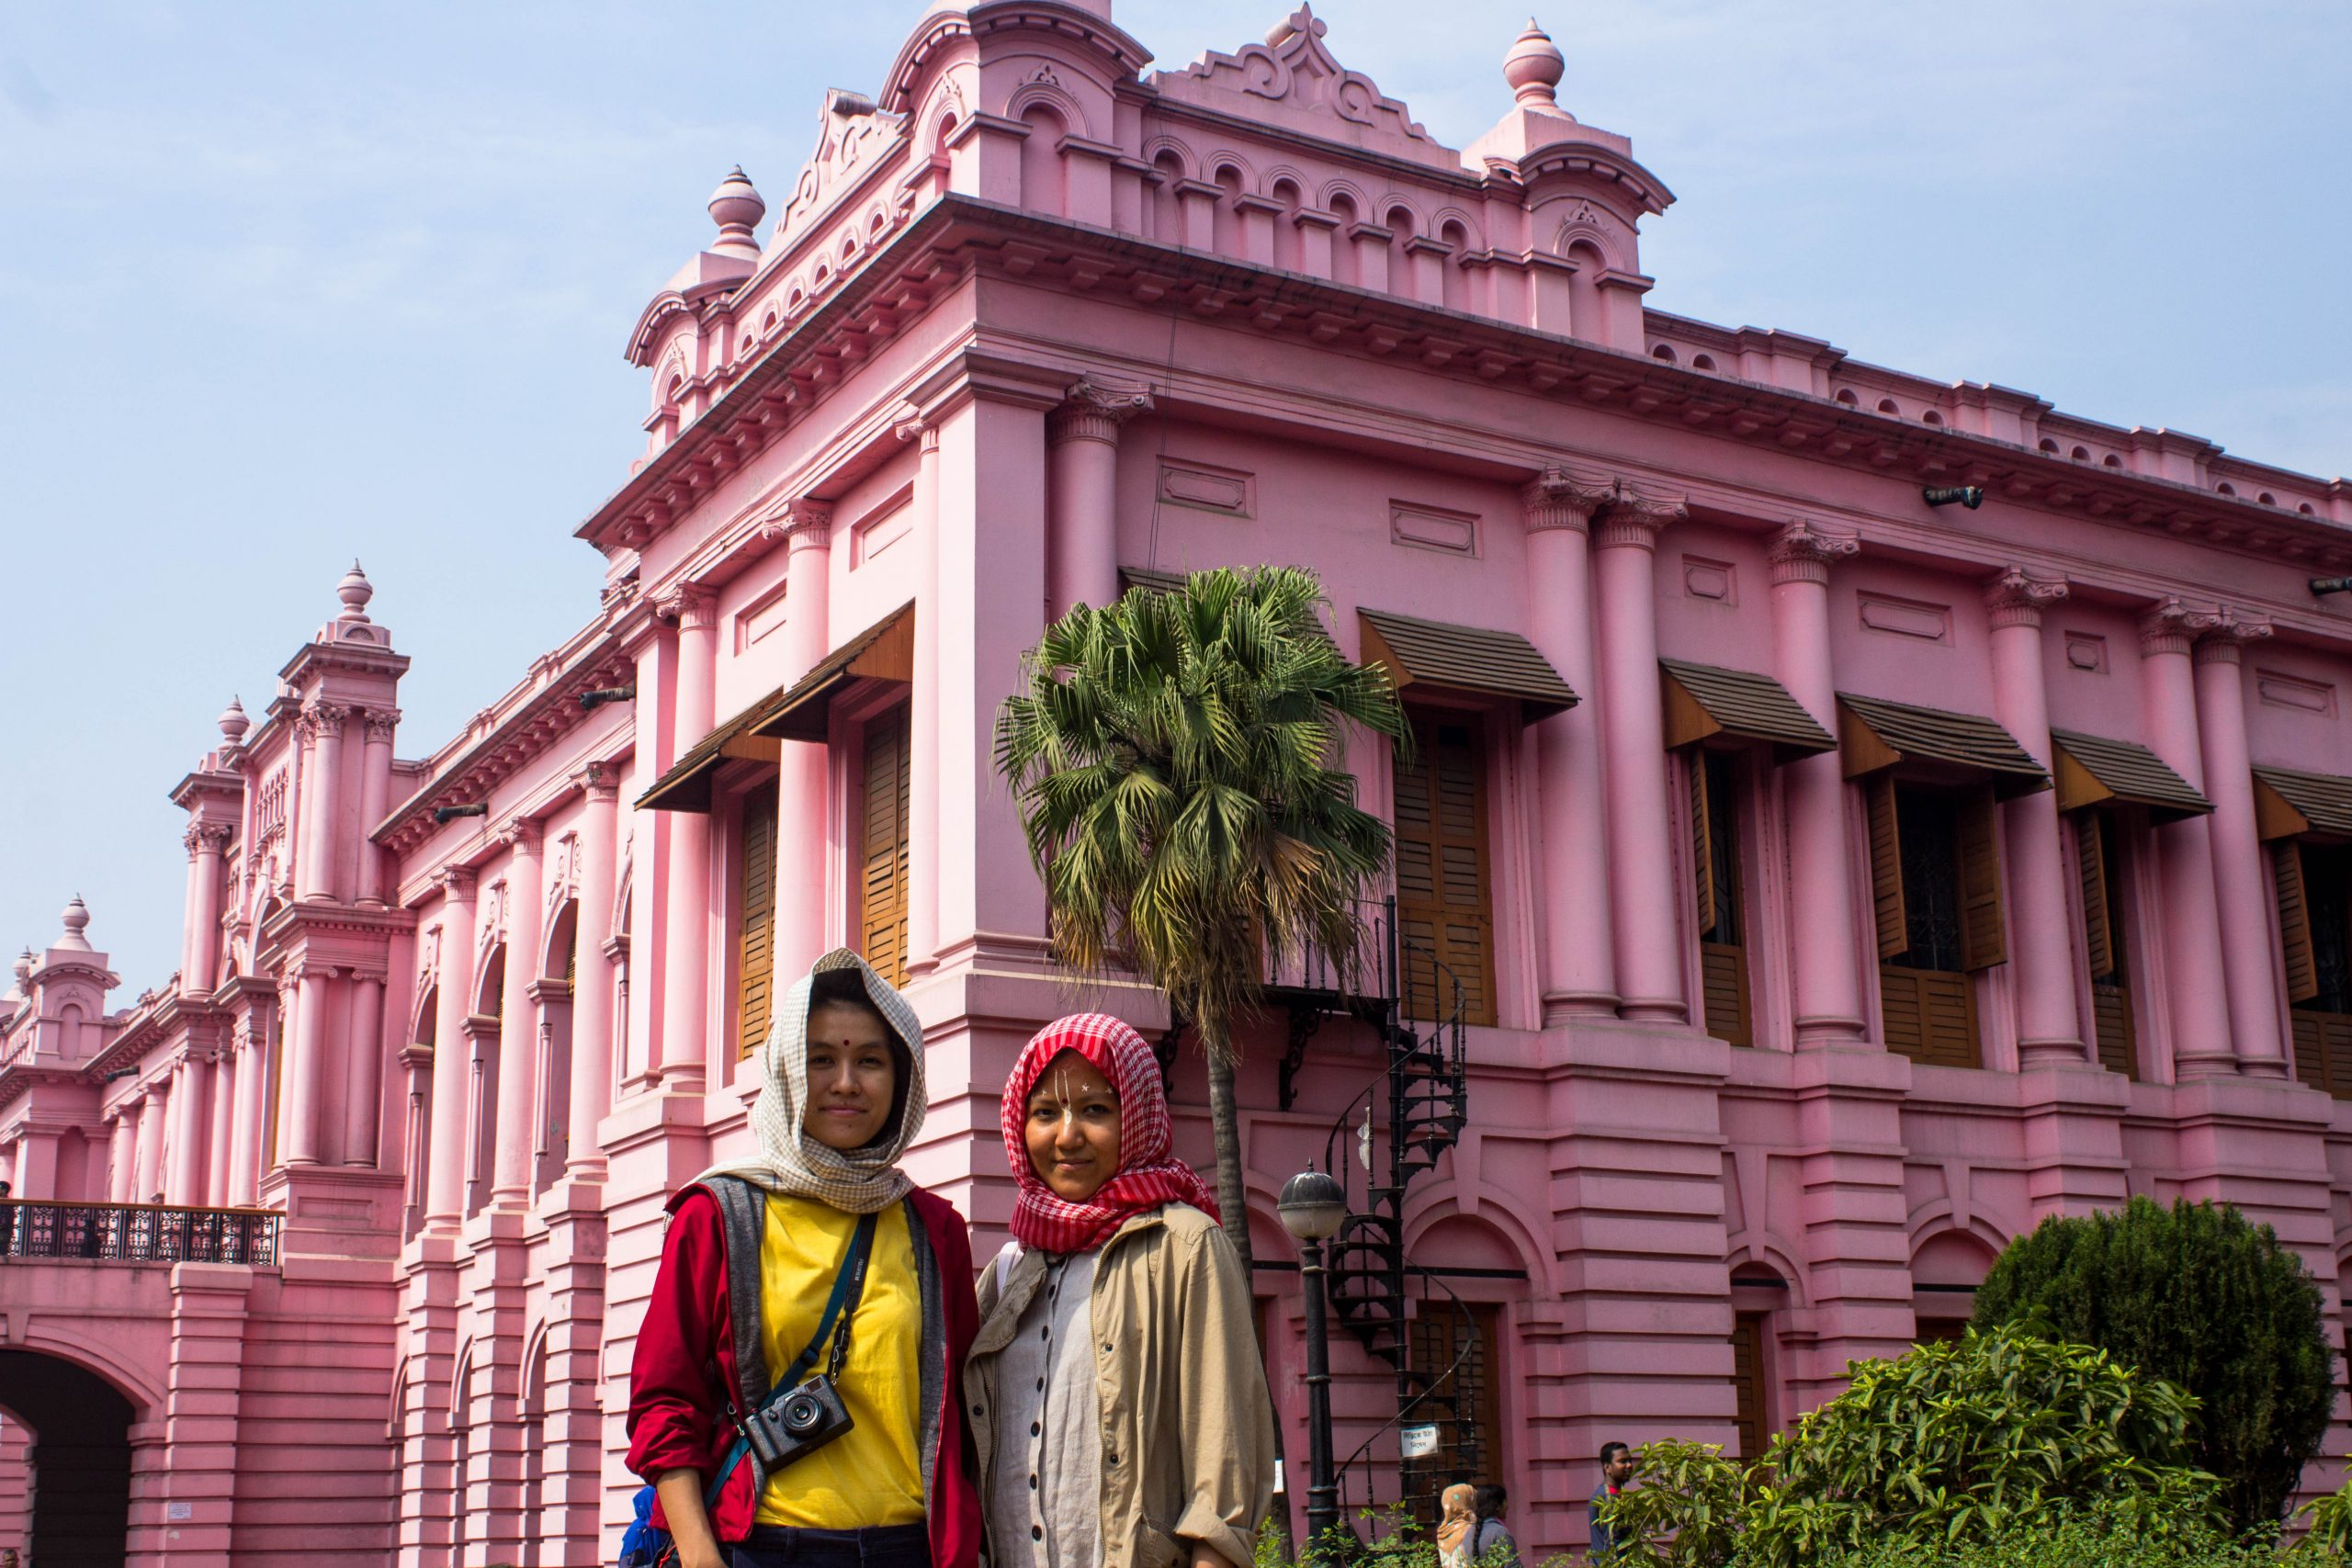 Photo: Khin et Rita. Image of two ladies in front of a pink building